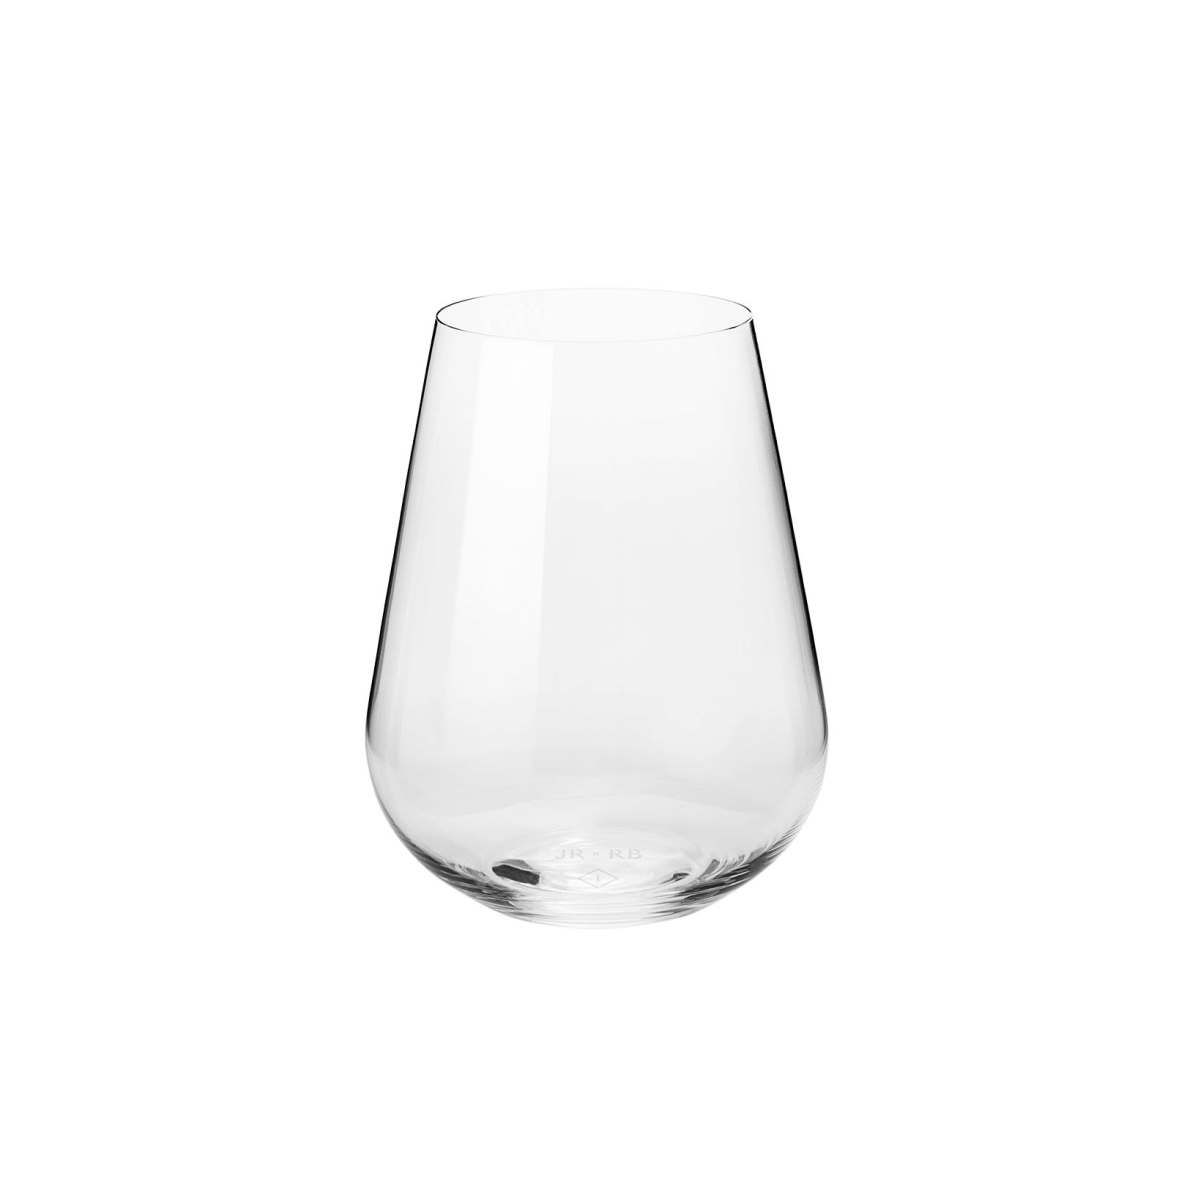 Richard Brendon The Universal Stemless Glass, Set of 6